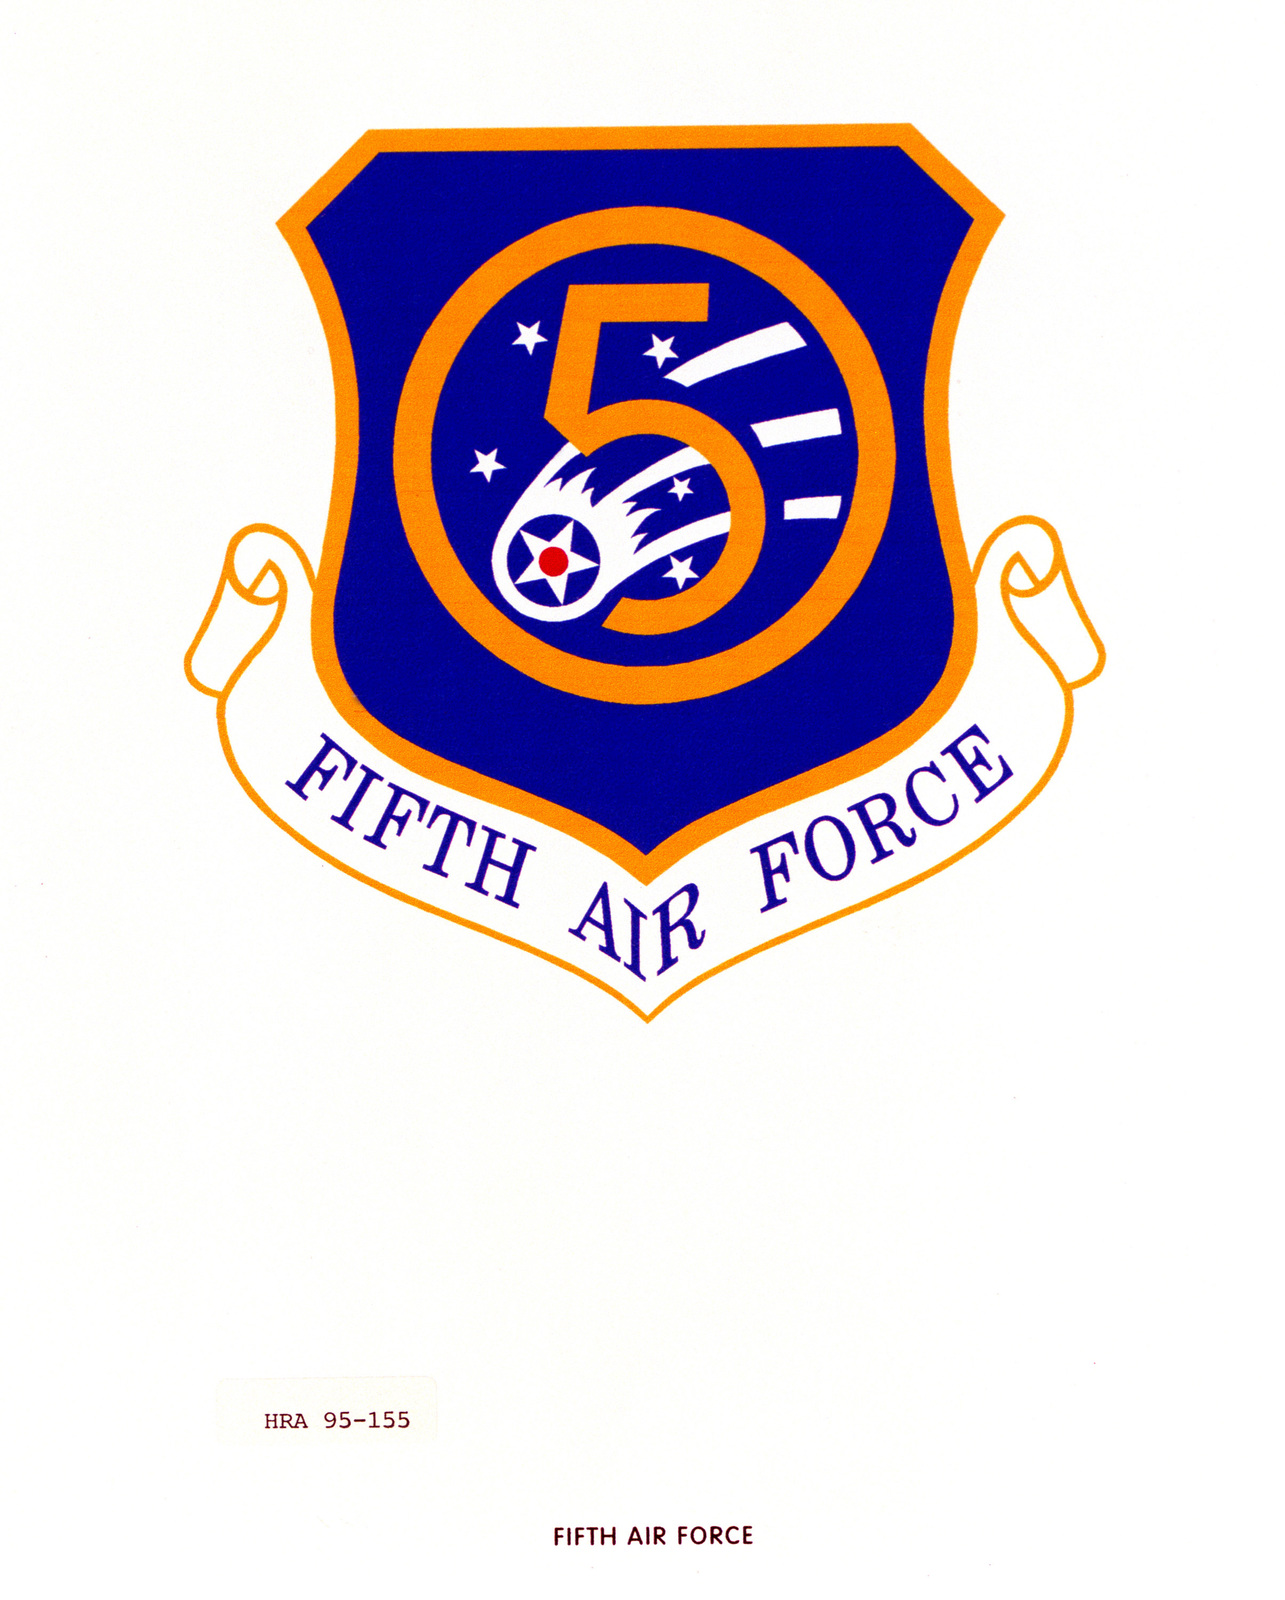 Approved Insignia for the 5th Air Force. Exact Date Shot Unknown